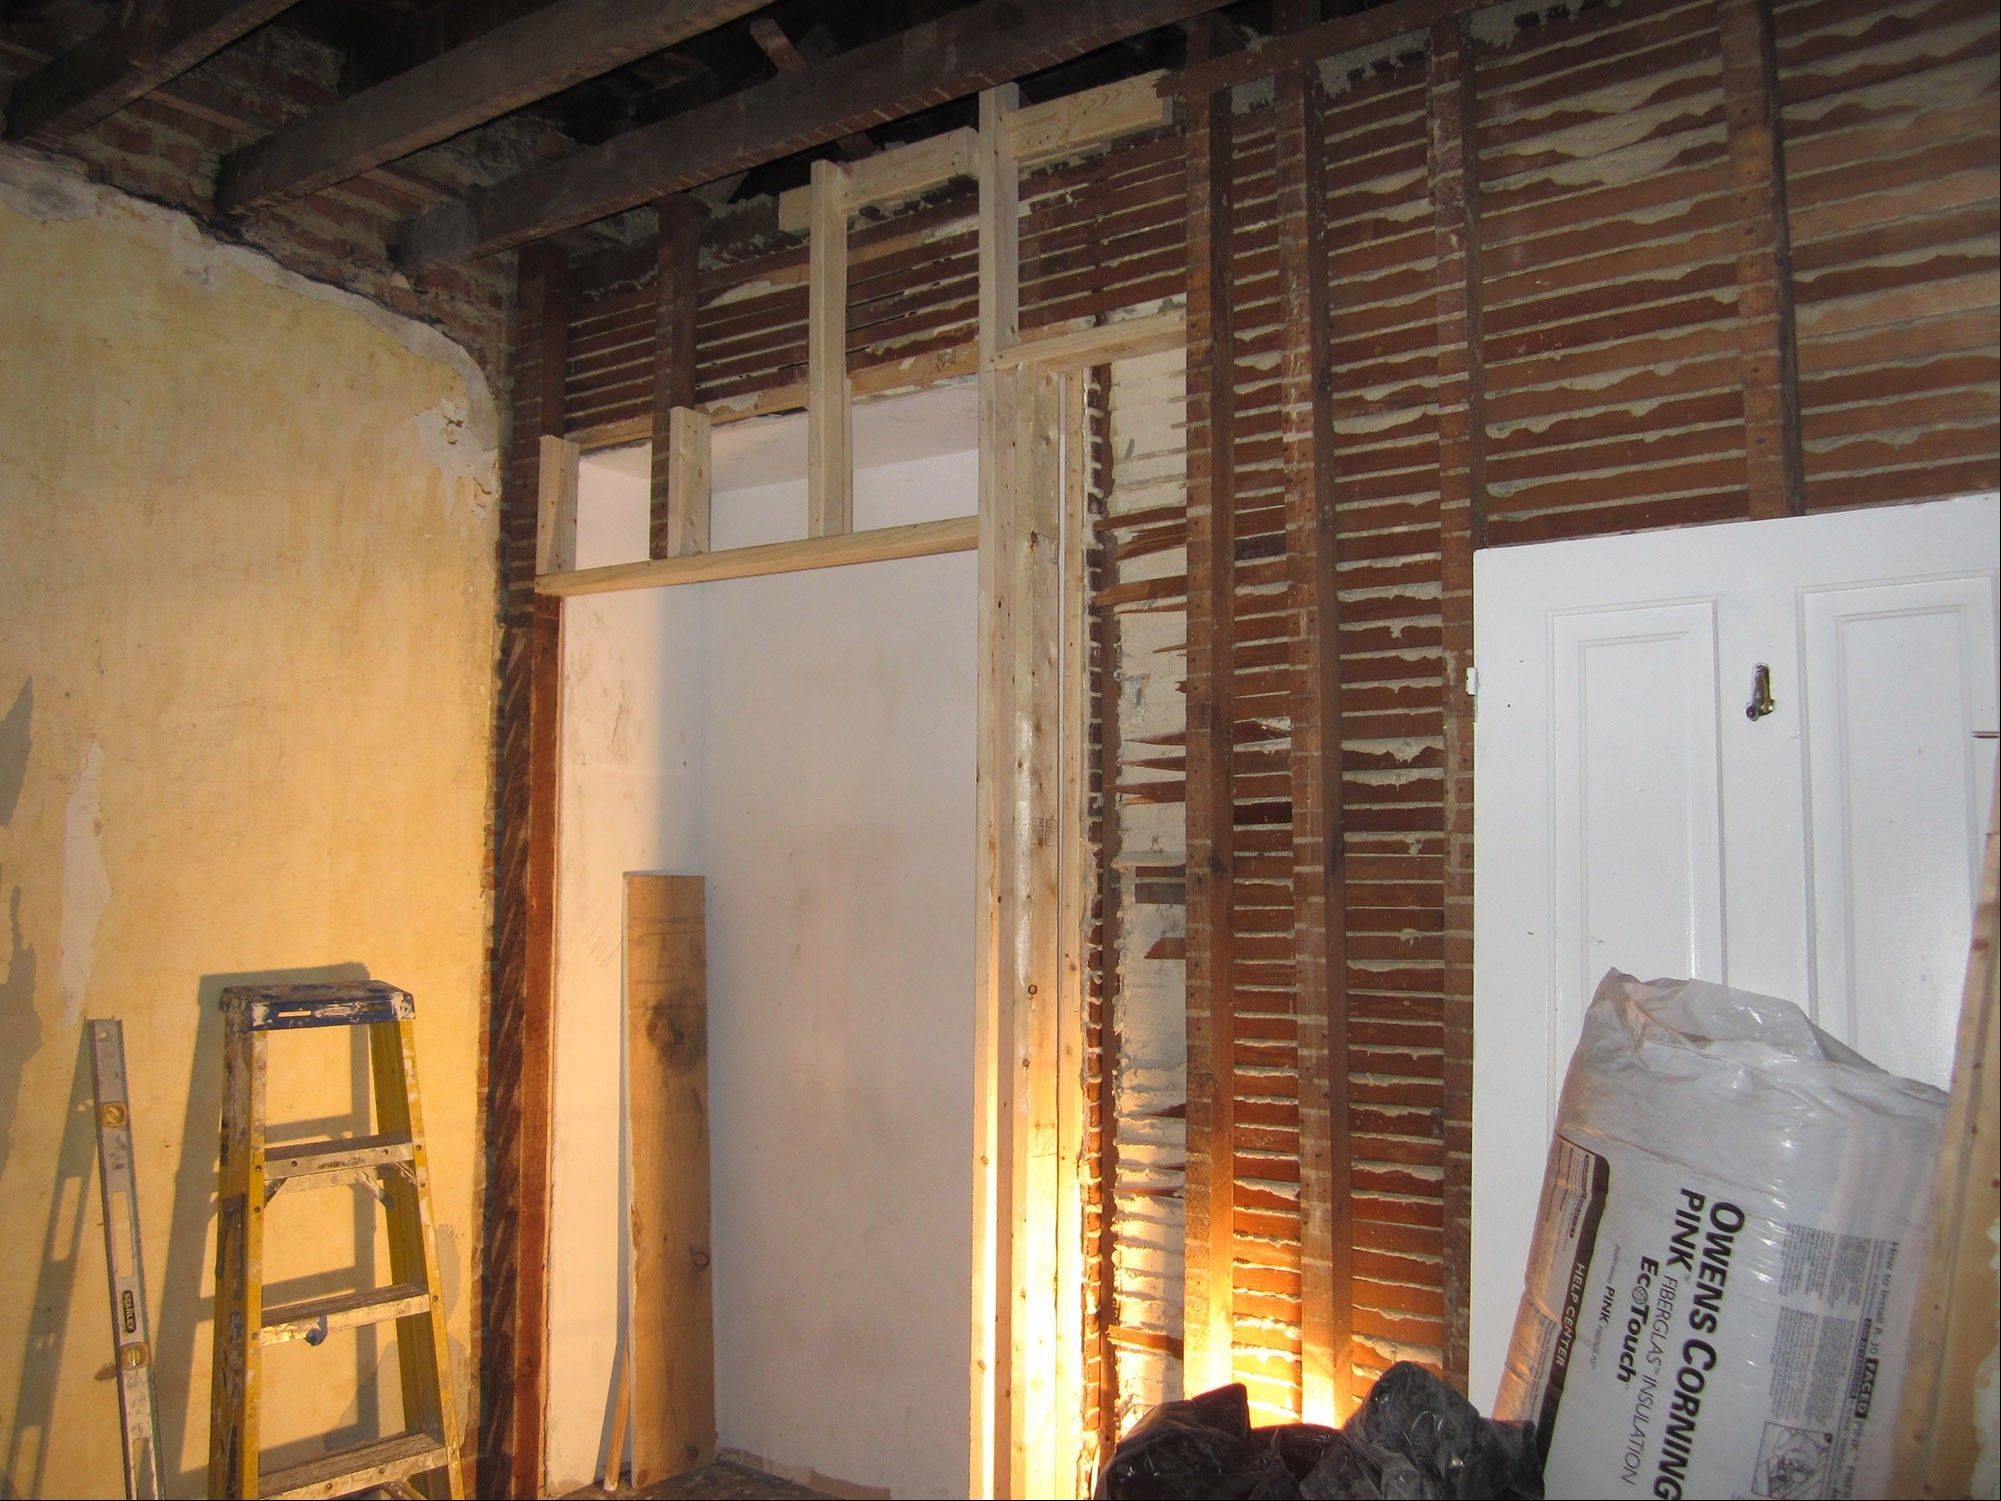 Luke Armerding did the demolition and much of the remodeling of two rooms in the townhouse he shares with his wife Juliet.